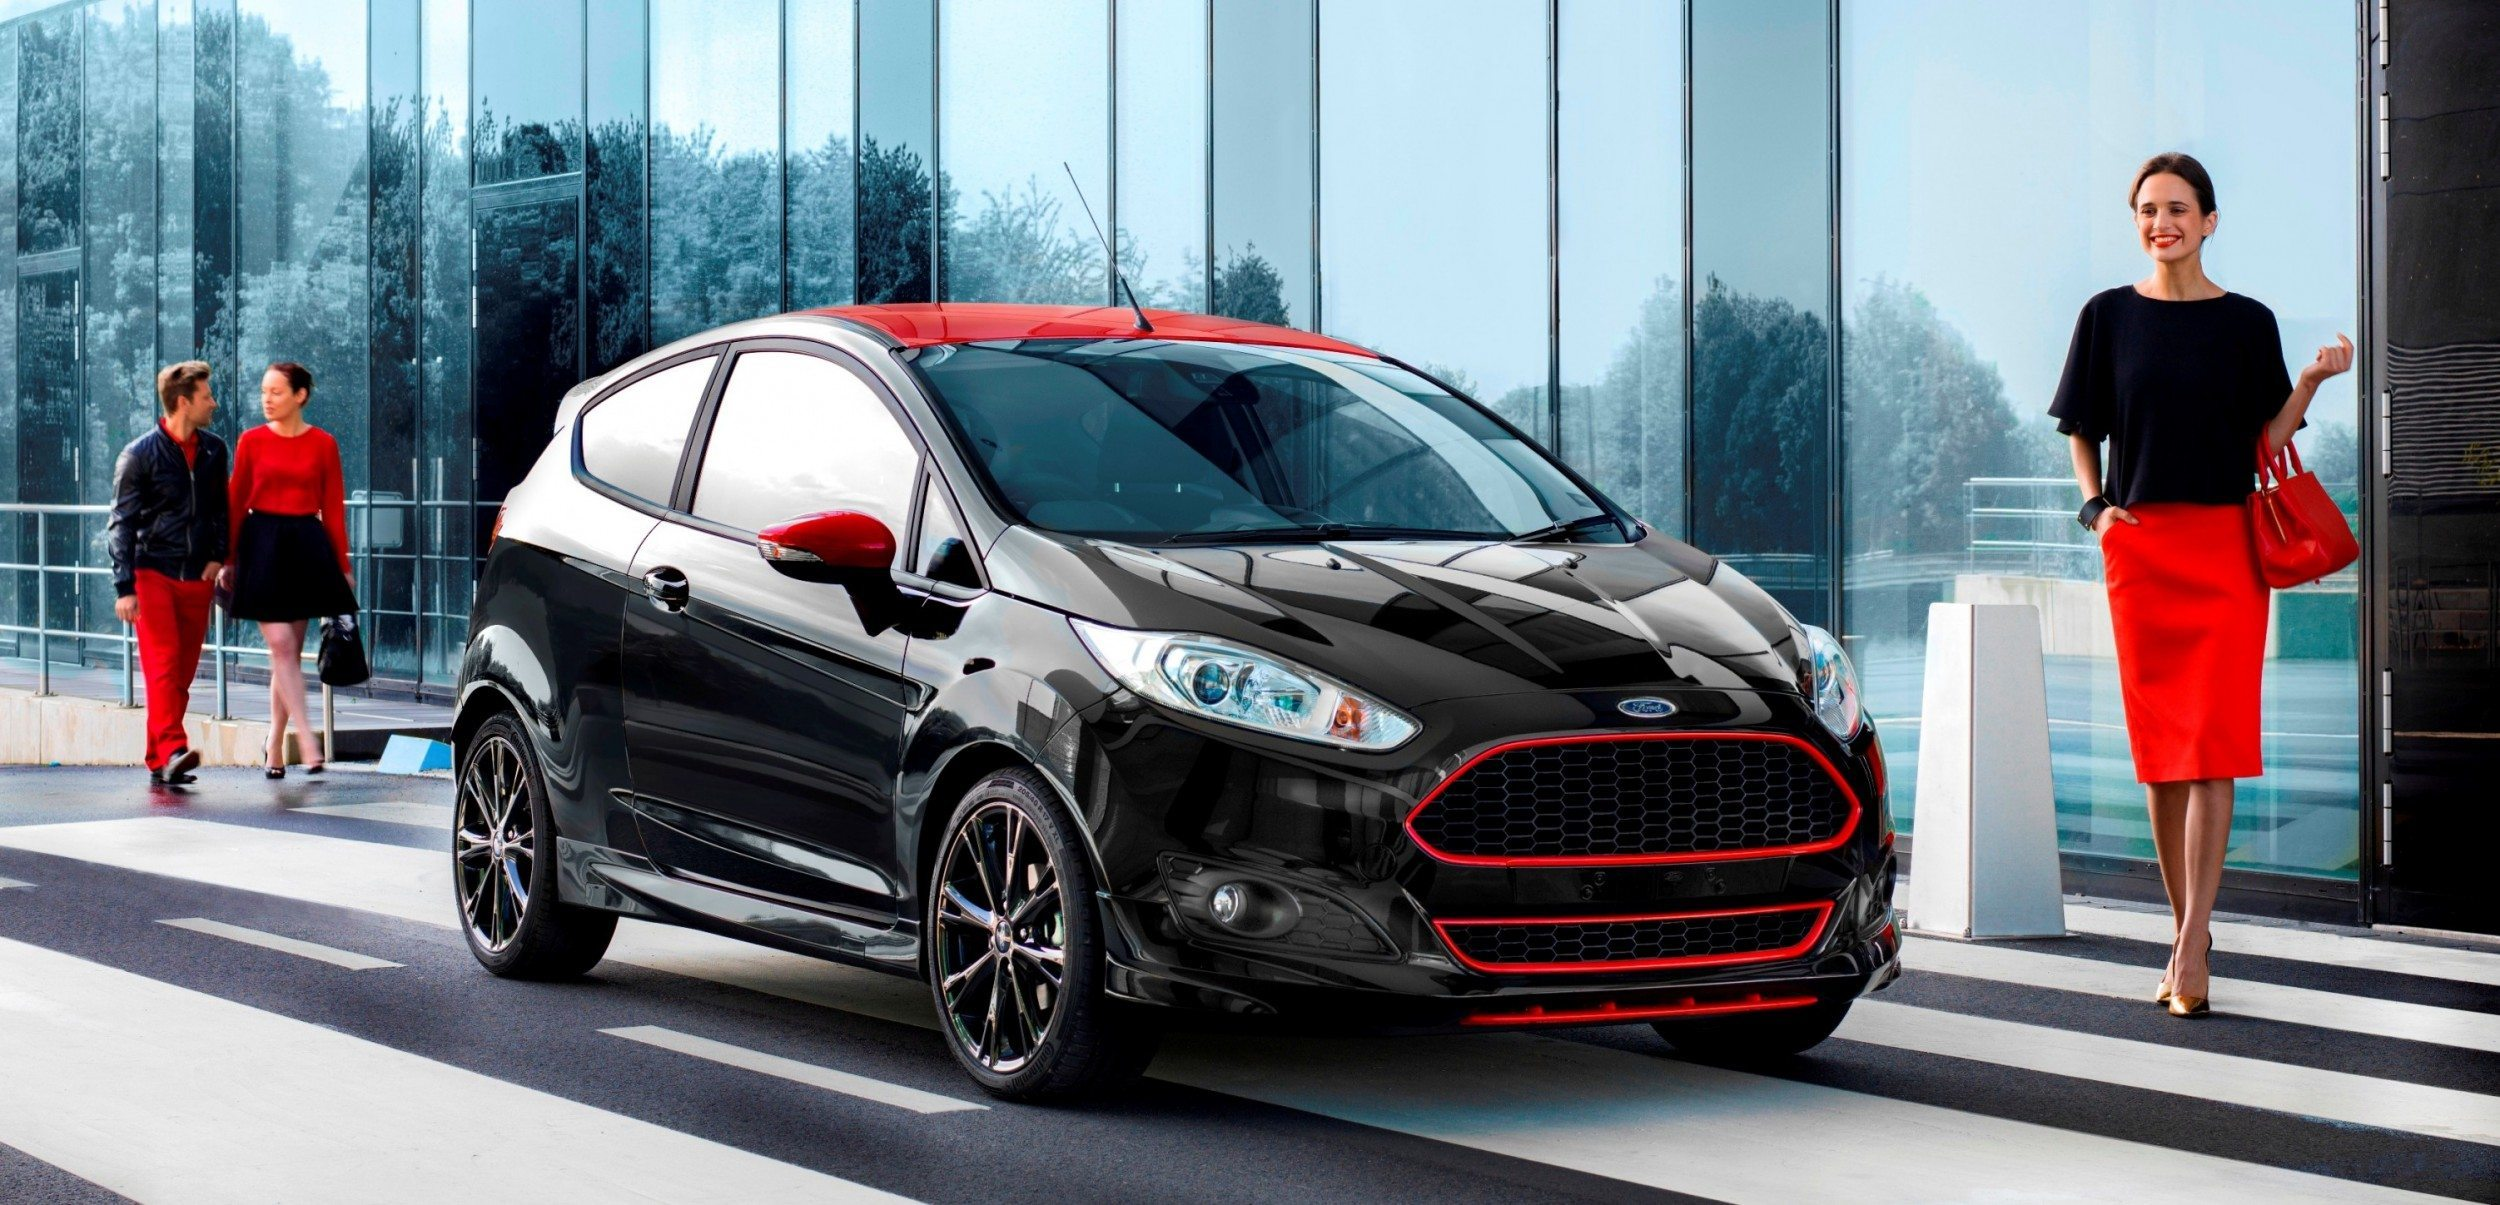 ford fiesta red edition  fiesta black edition  uk  aston style painted lips